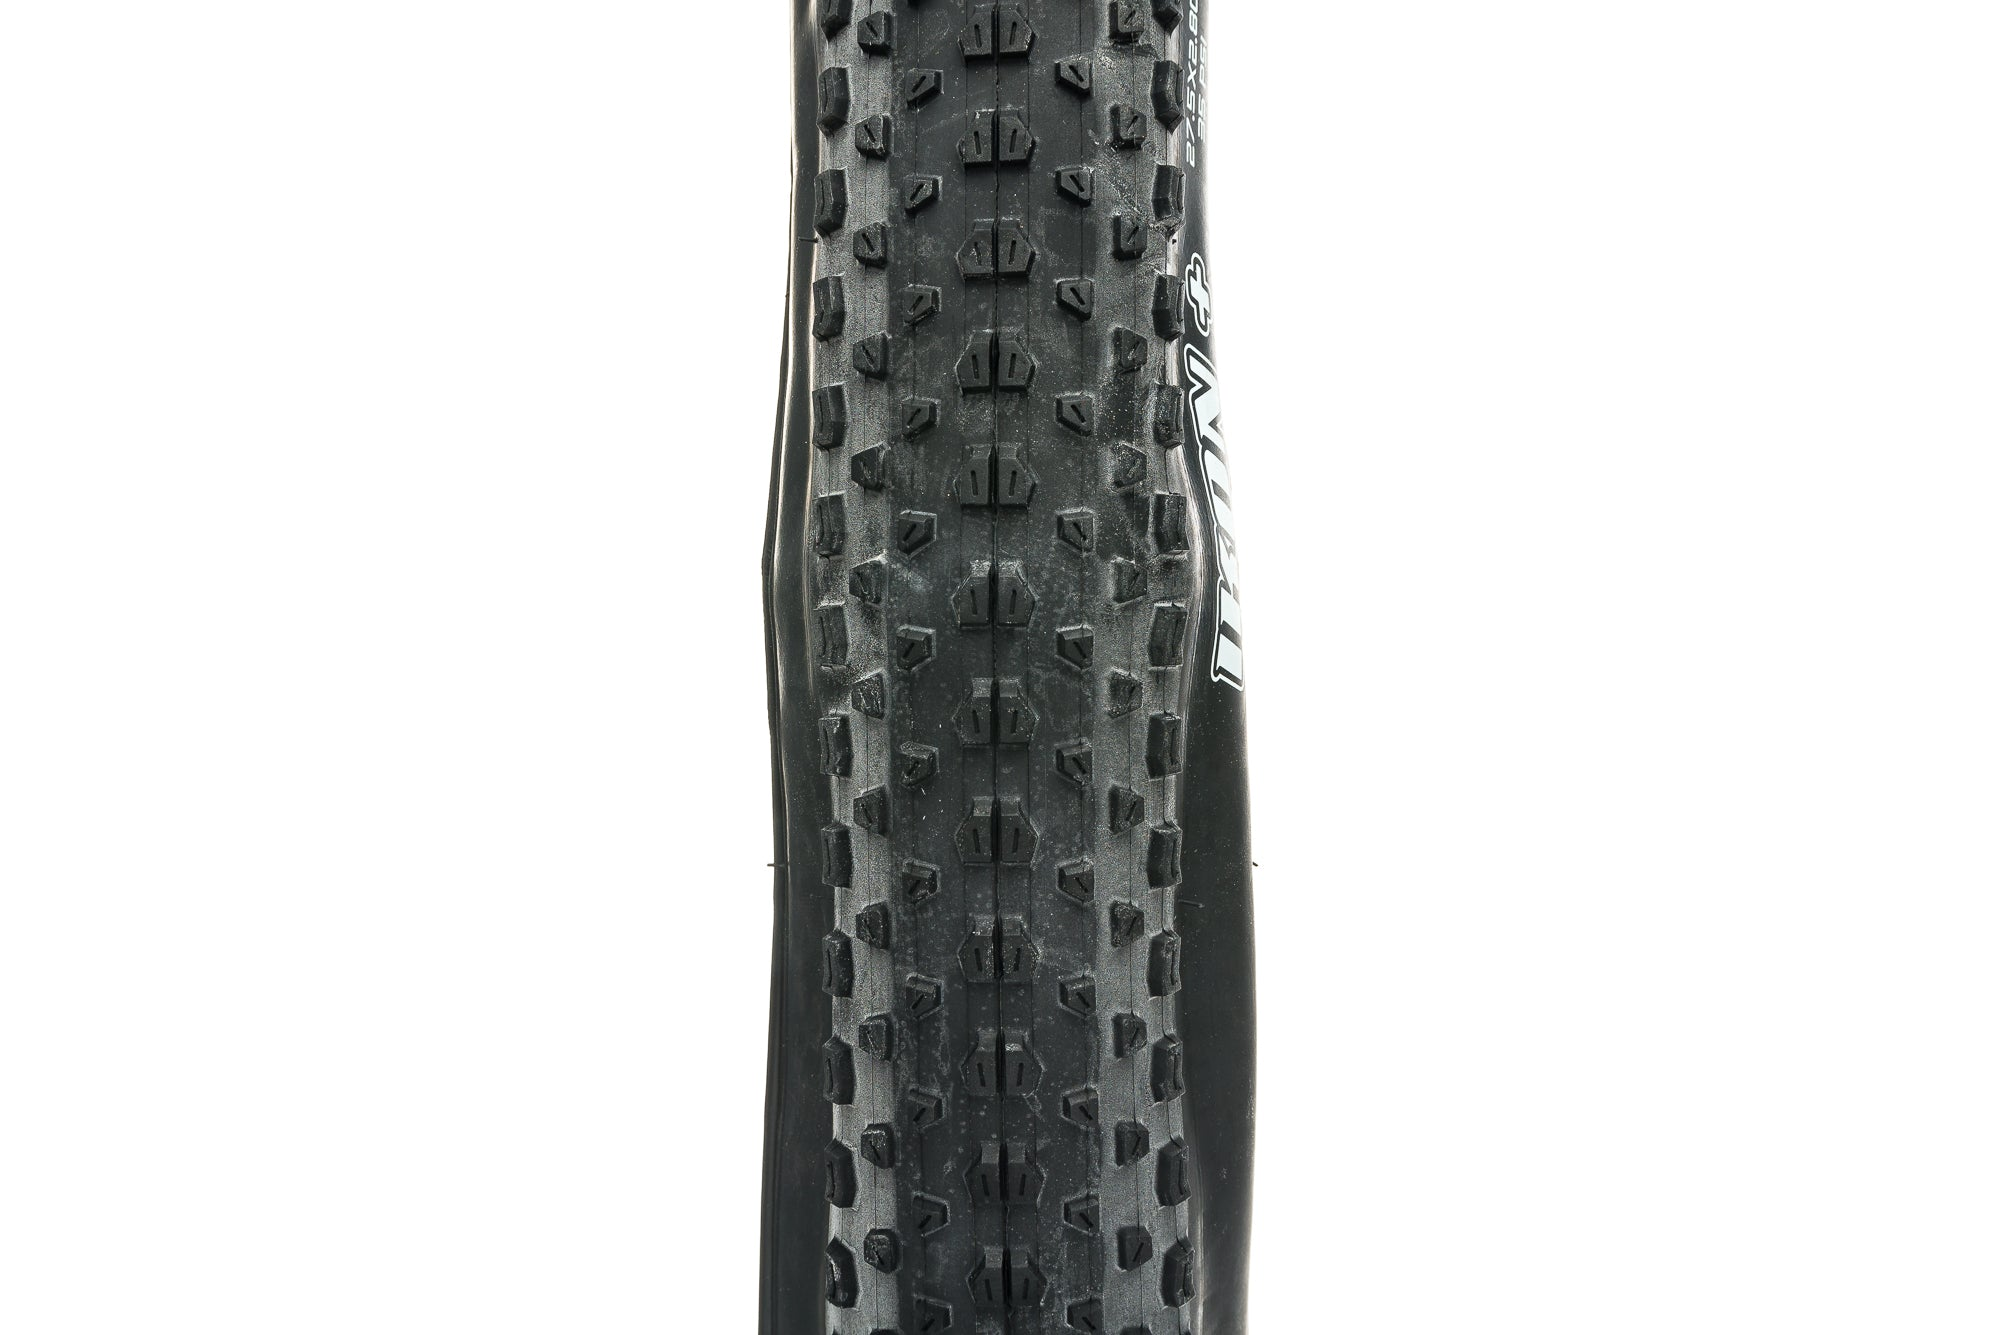 "Maxxis Ikon + Tire 27.5 x 2.80"" 120 TPI Tubeless EXO Protection non-drive side"